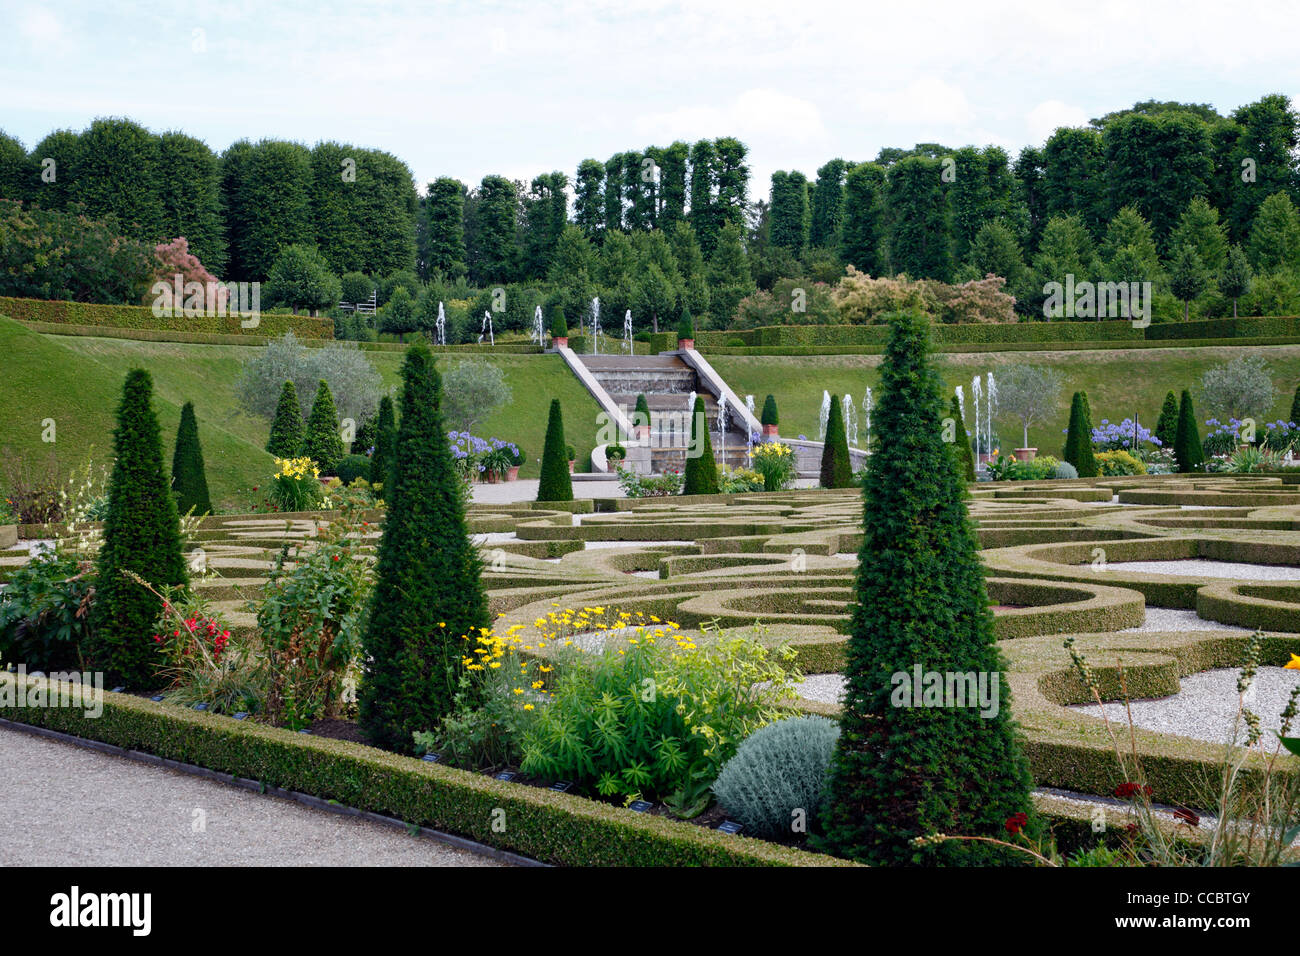 The Baroque Garden at the Frederiksborg Castle in Hillerød, Denmark Stock Photo